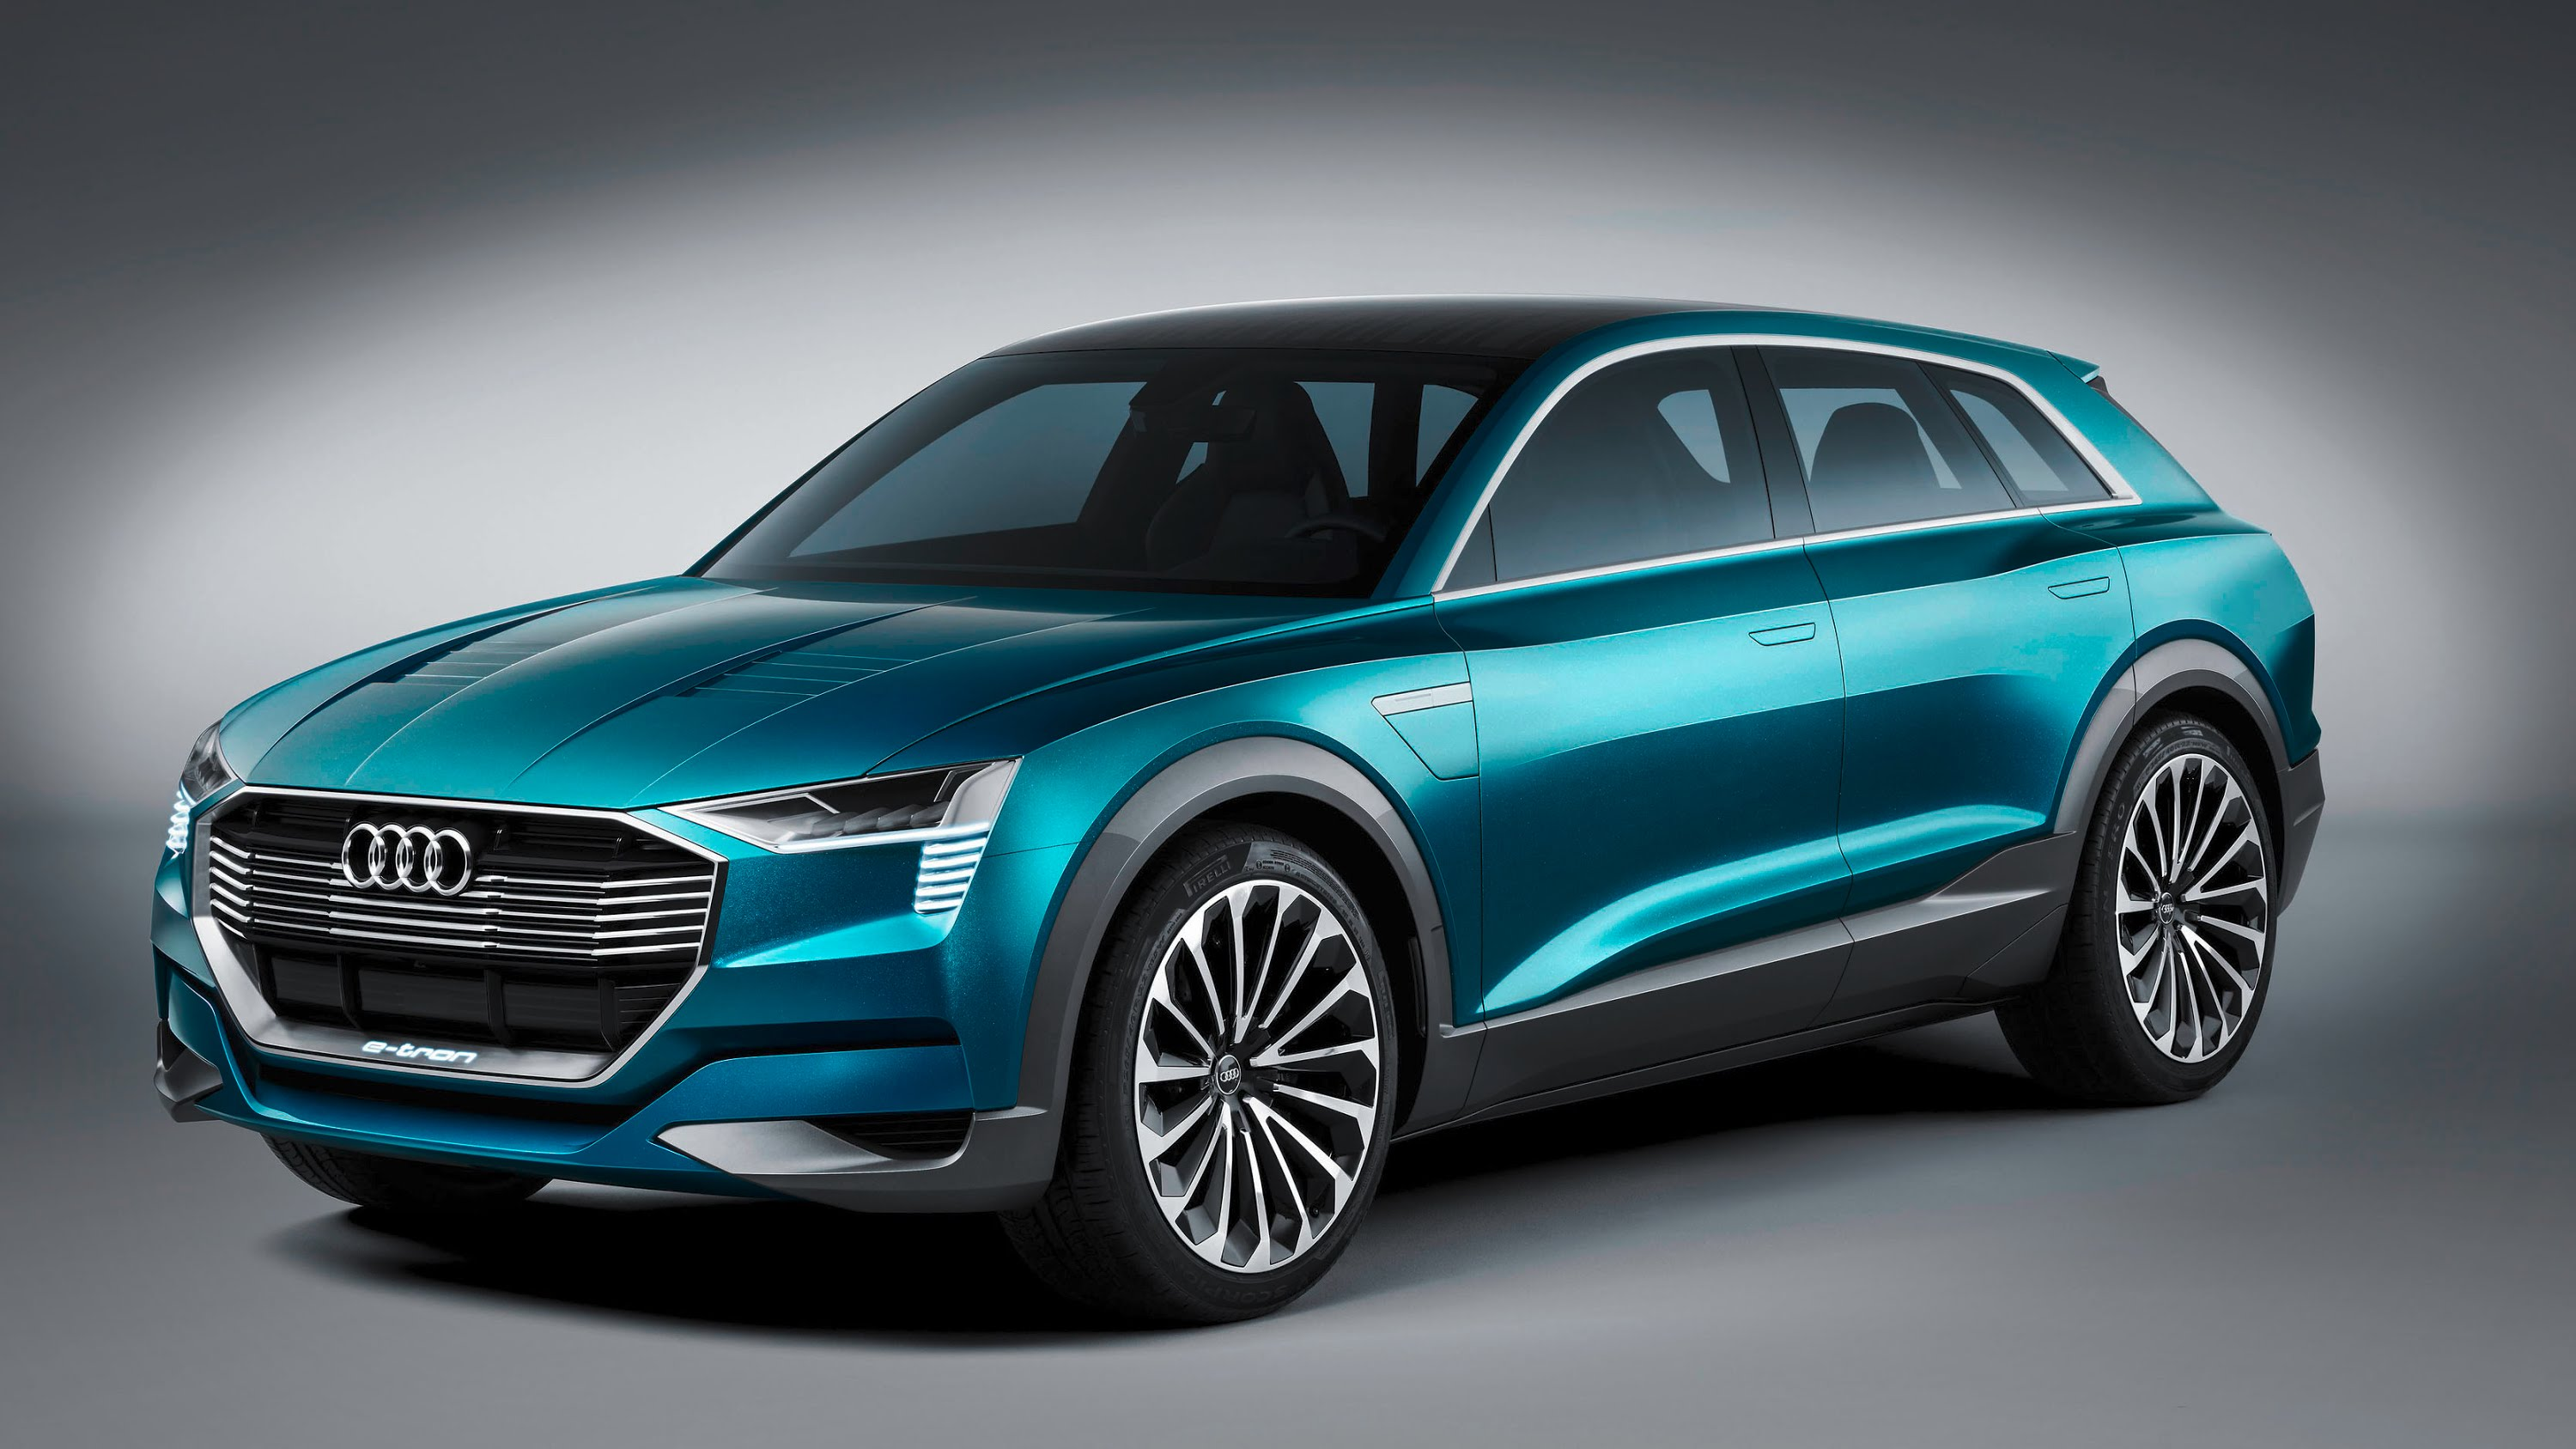 Audi Q6 E Tron Quattro 2018 Hd Wallpapers Free Download